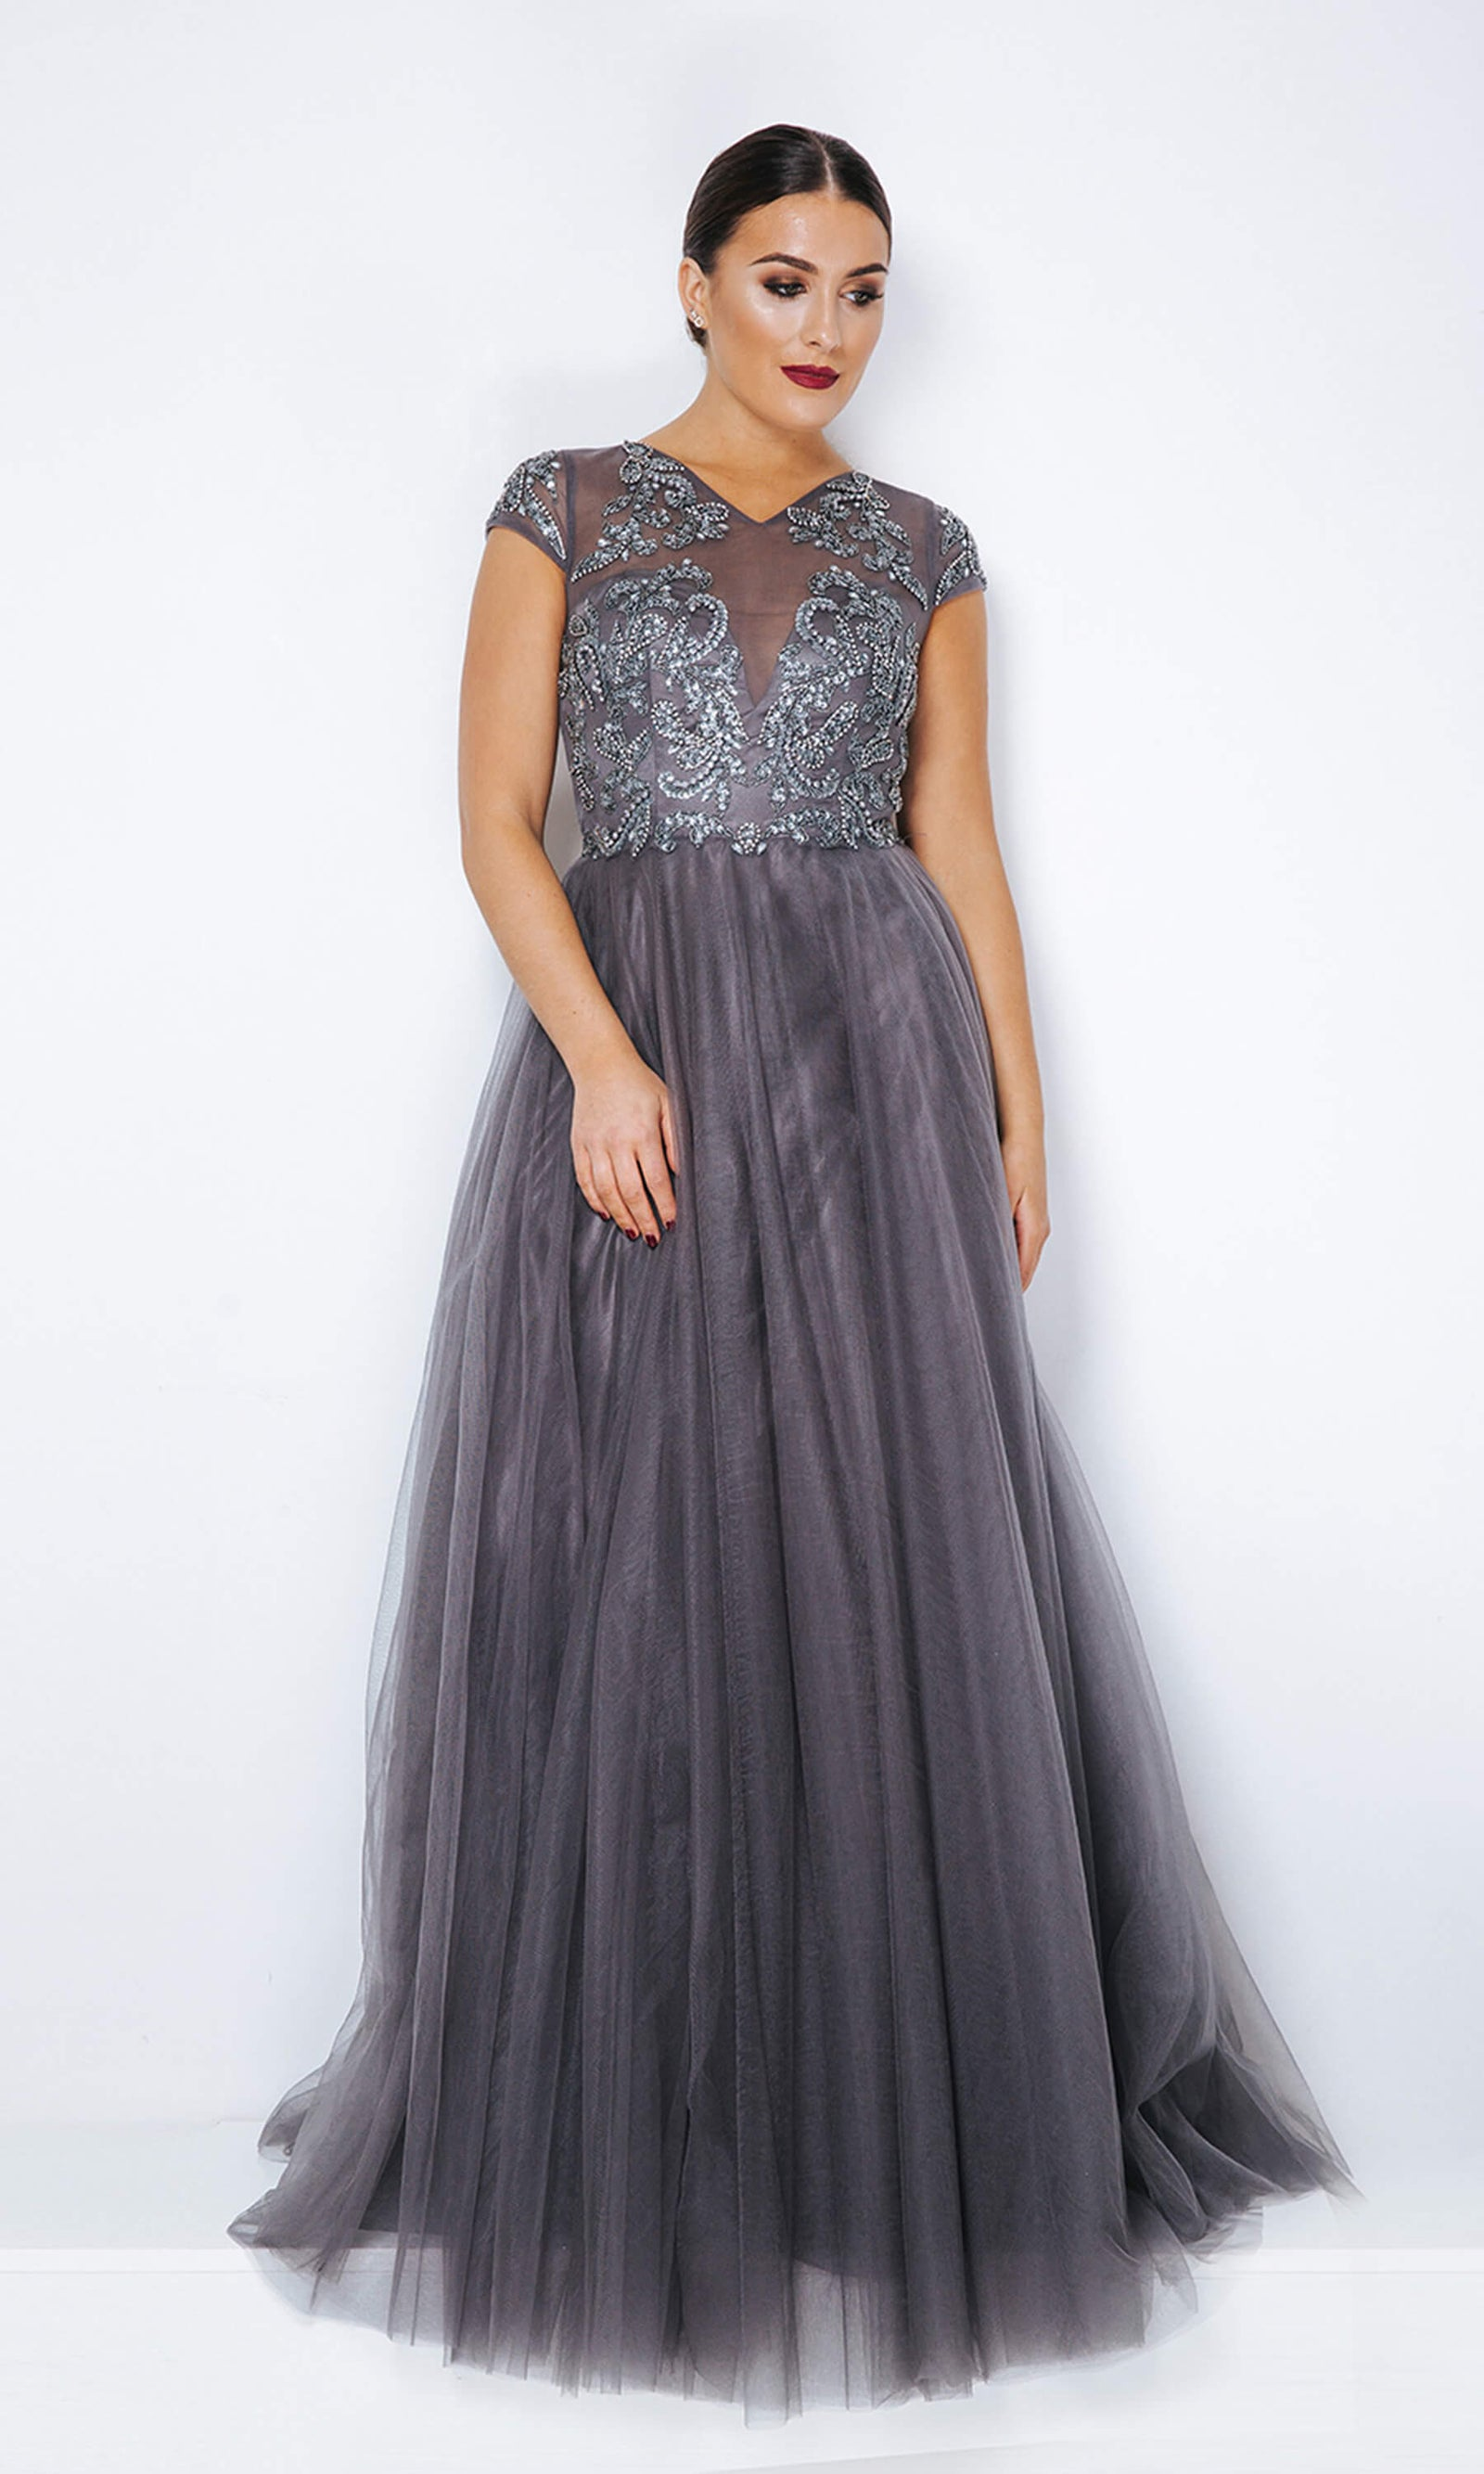 1013342 Pewter Dynasty Net Ballgown With Cap Sleeves